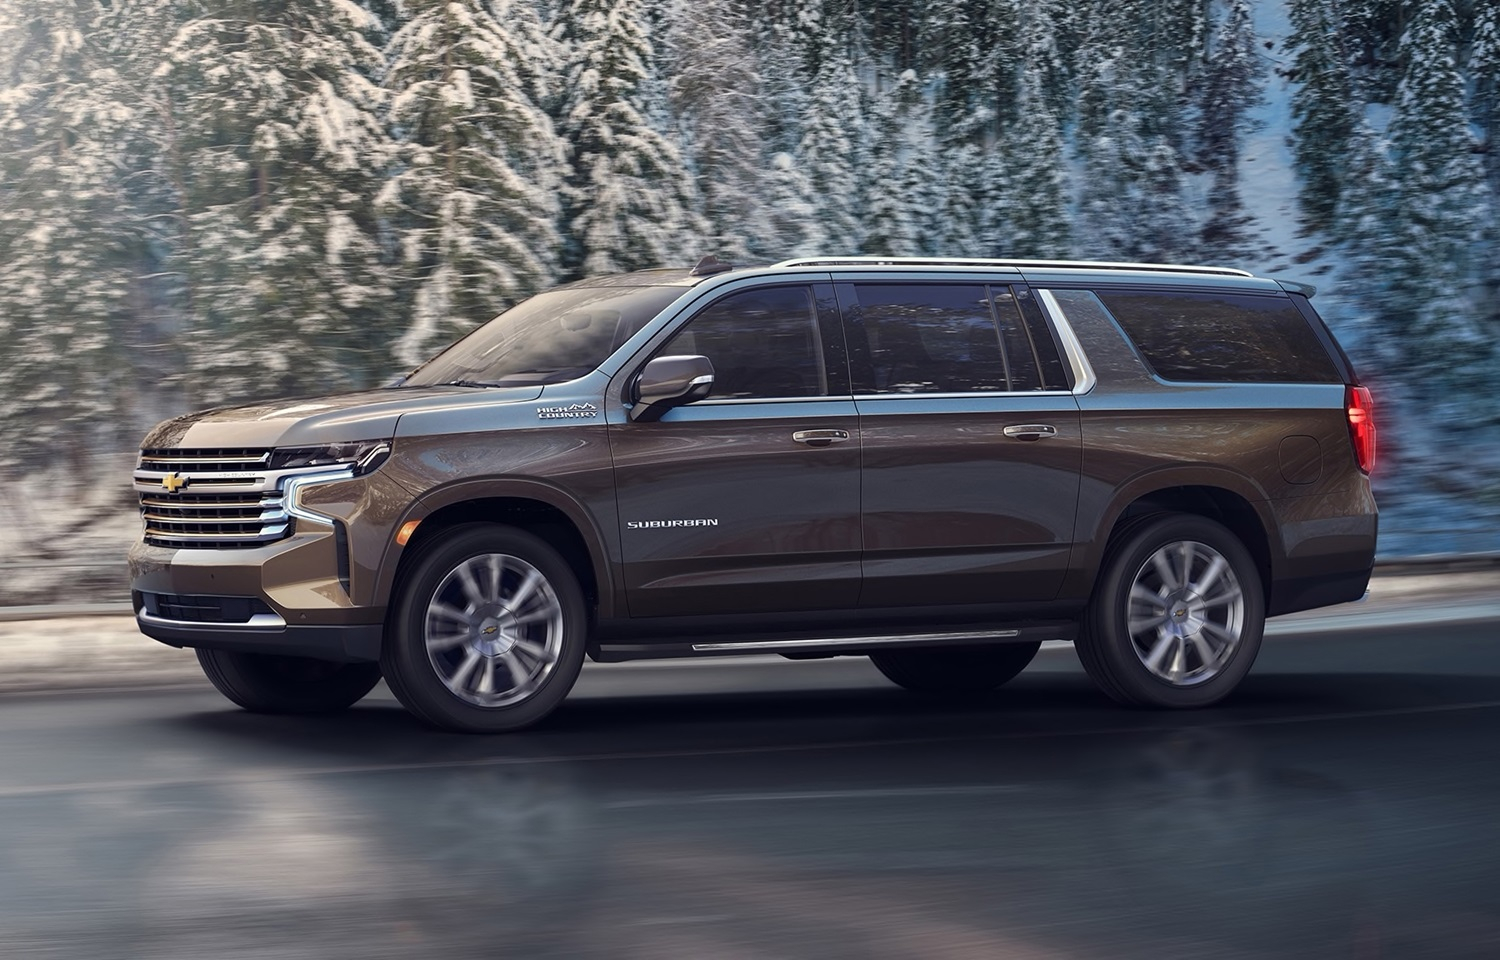 2021 General Motors Suvs Gain City Mpg | Gm Authority New 2021 Buick Lucerne Tires, Gas Mileage, Length